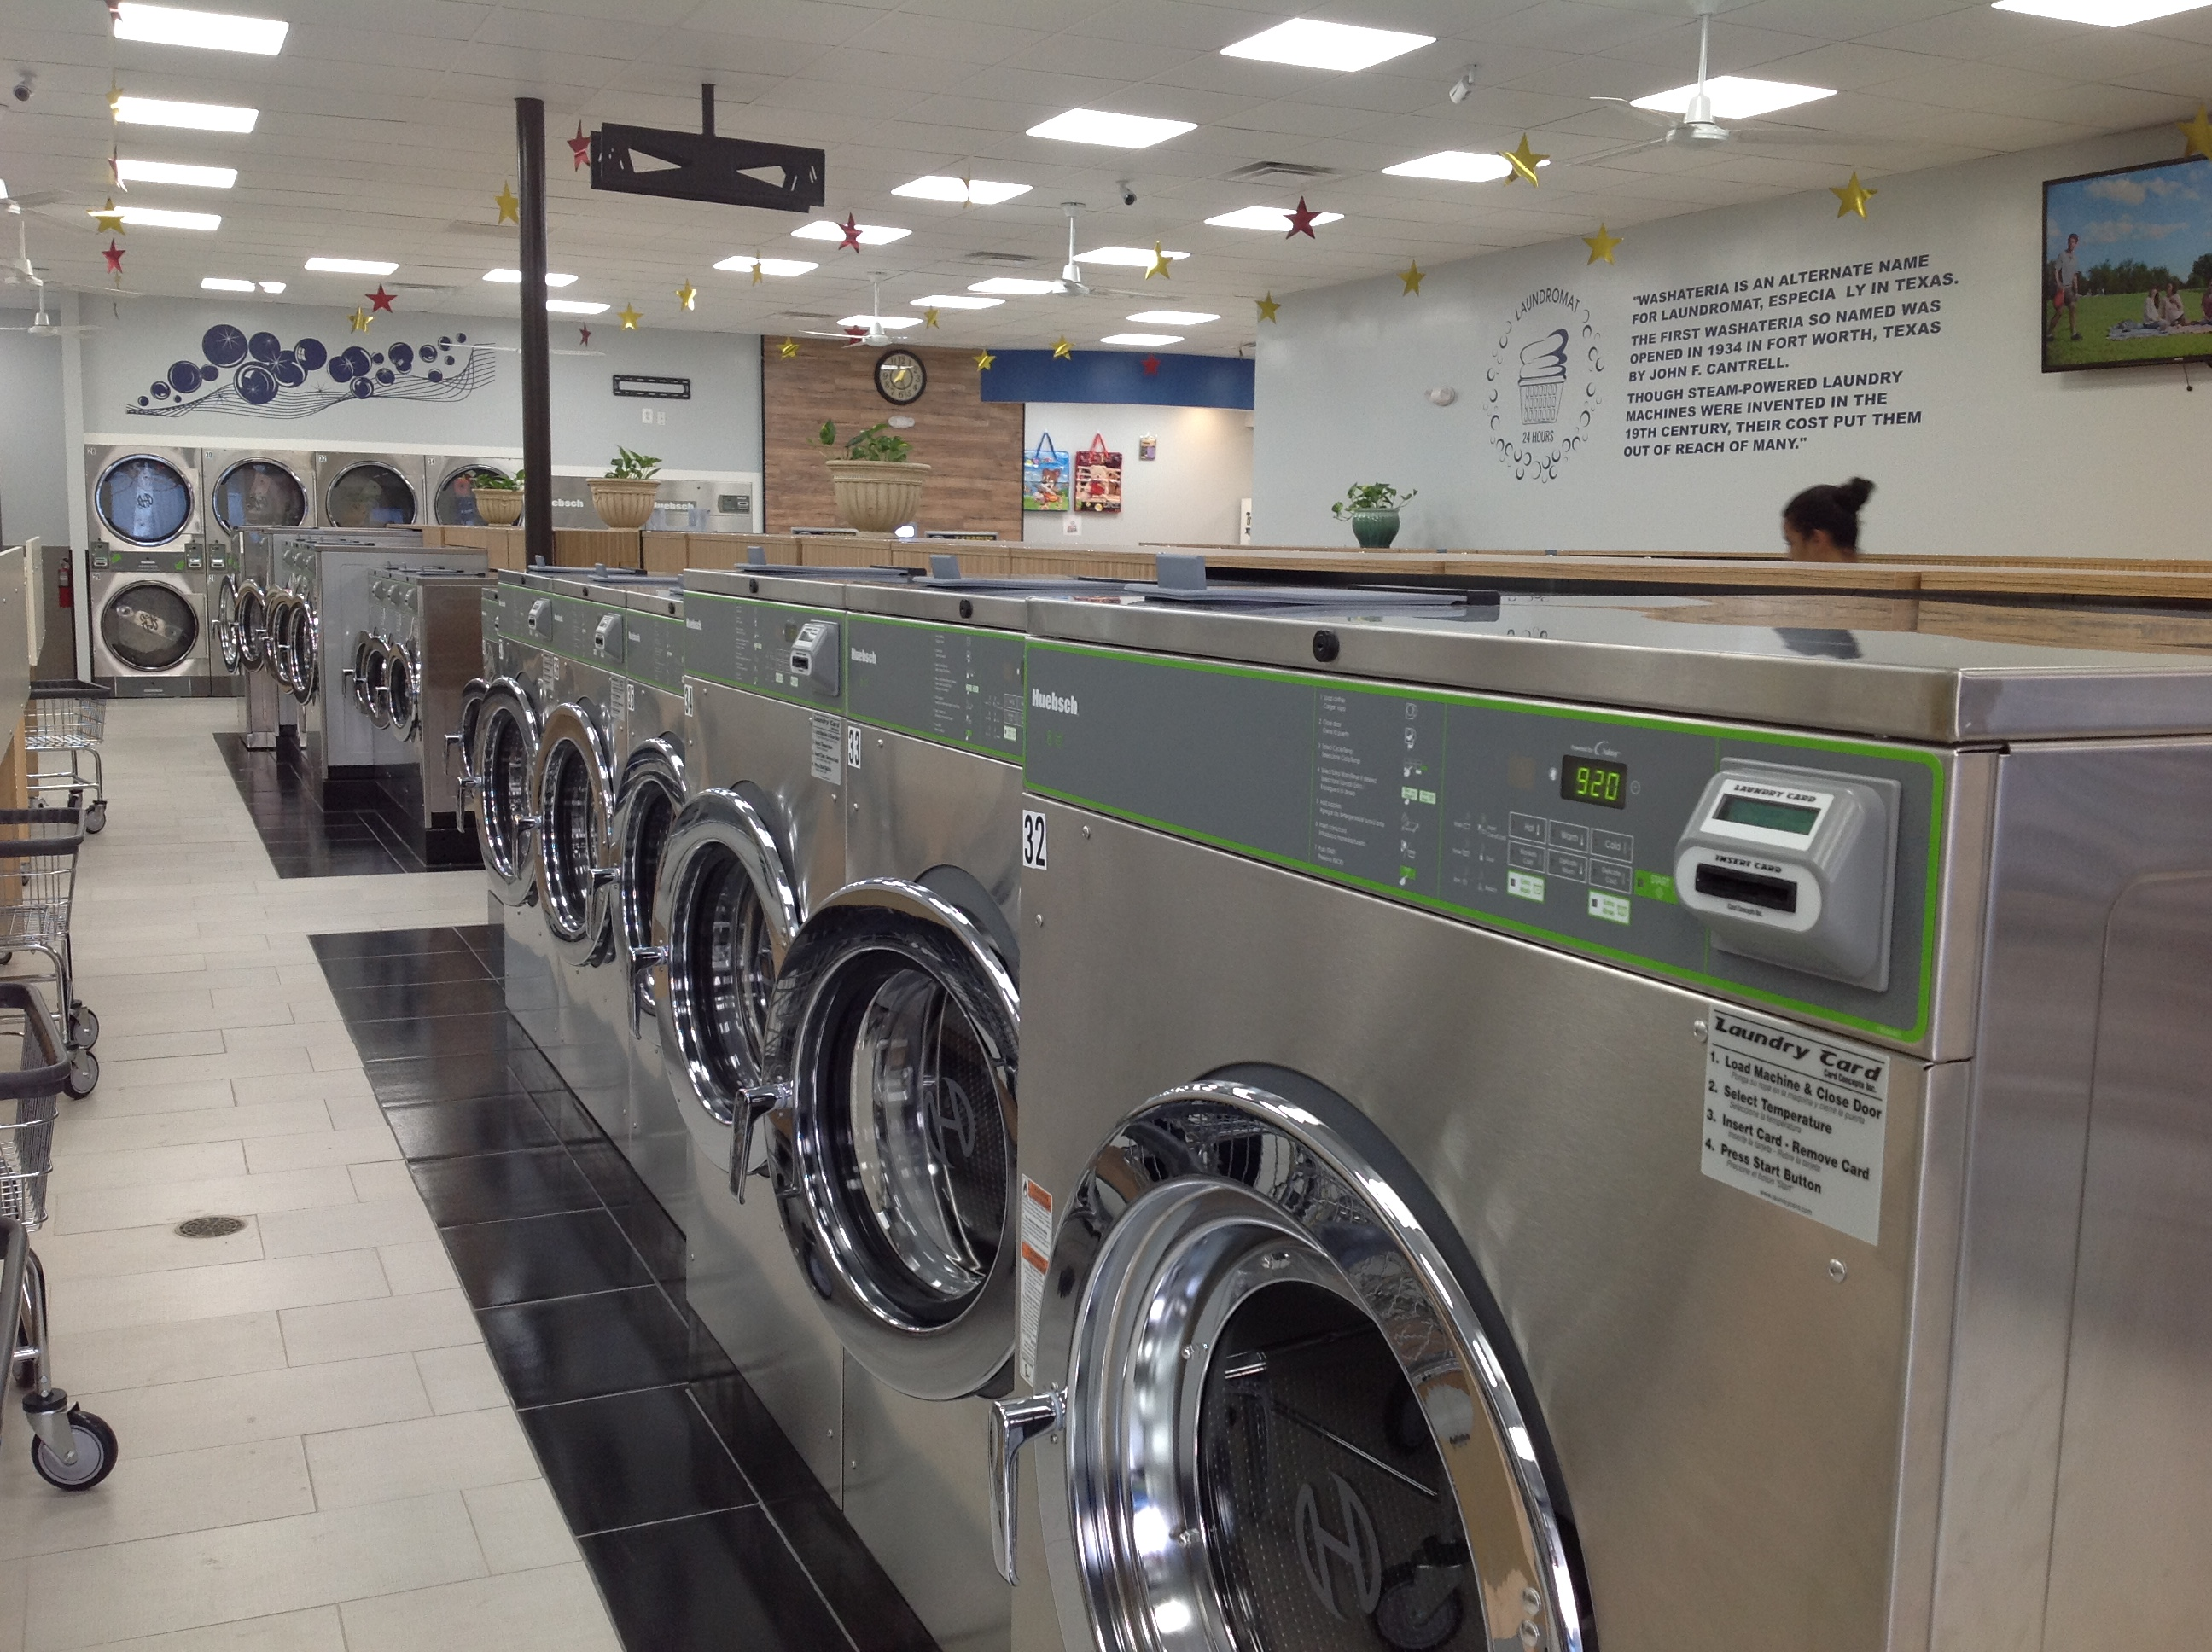 Stars Laundromat Overview3